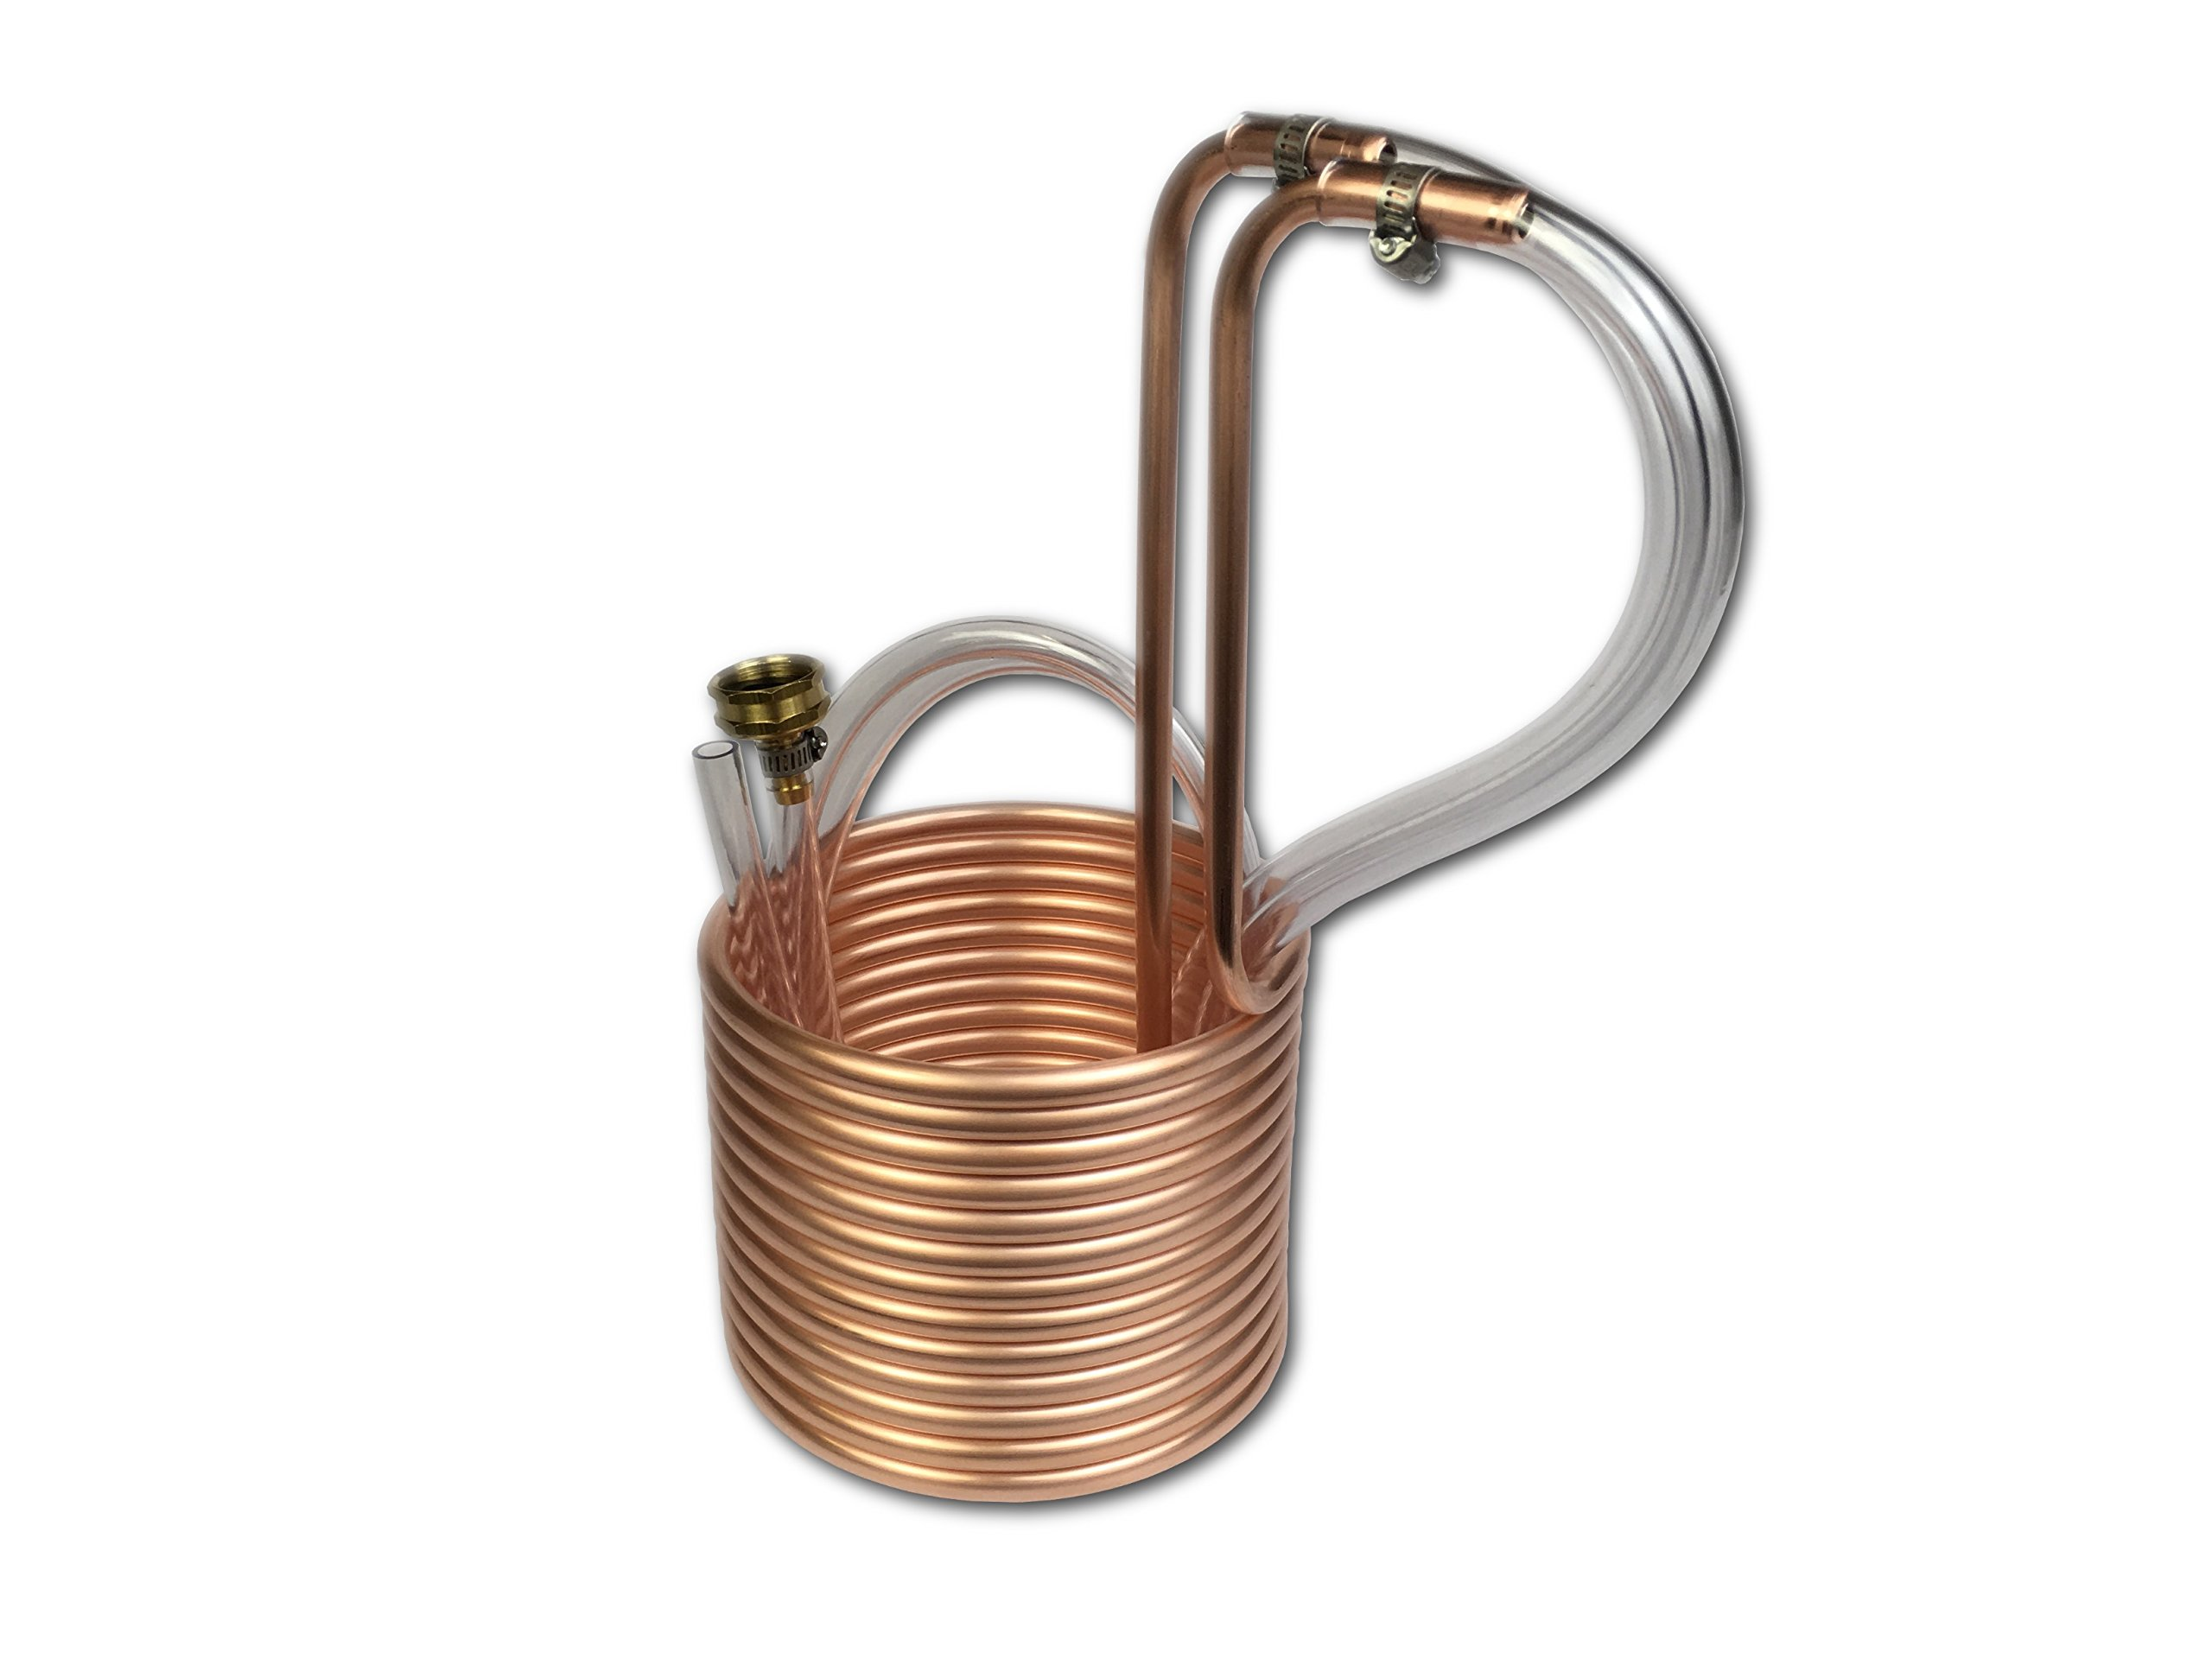 COLDBREAK 25' Wort Chiller, 3/8'', 100% Pure USA Copper, 4' Vinyl Tubing, Heavy-Duty Garden Hose Fitting by Coldbreak